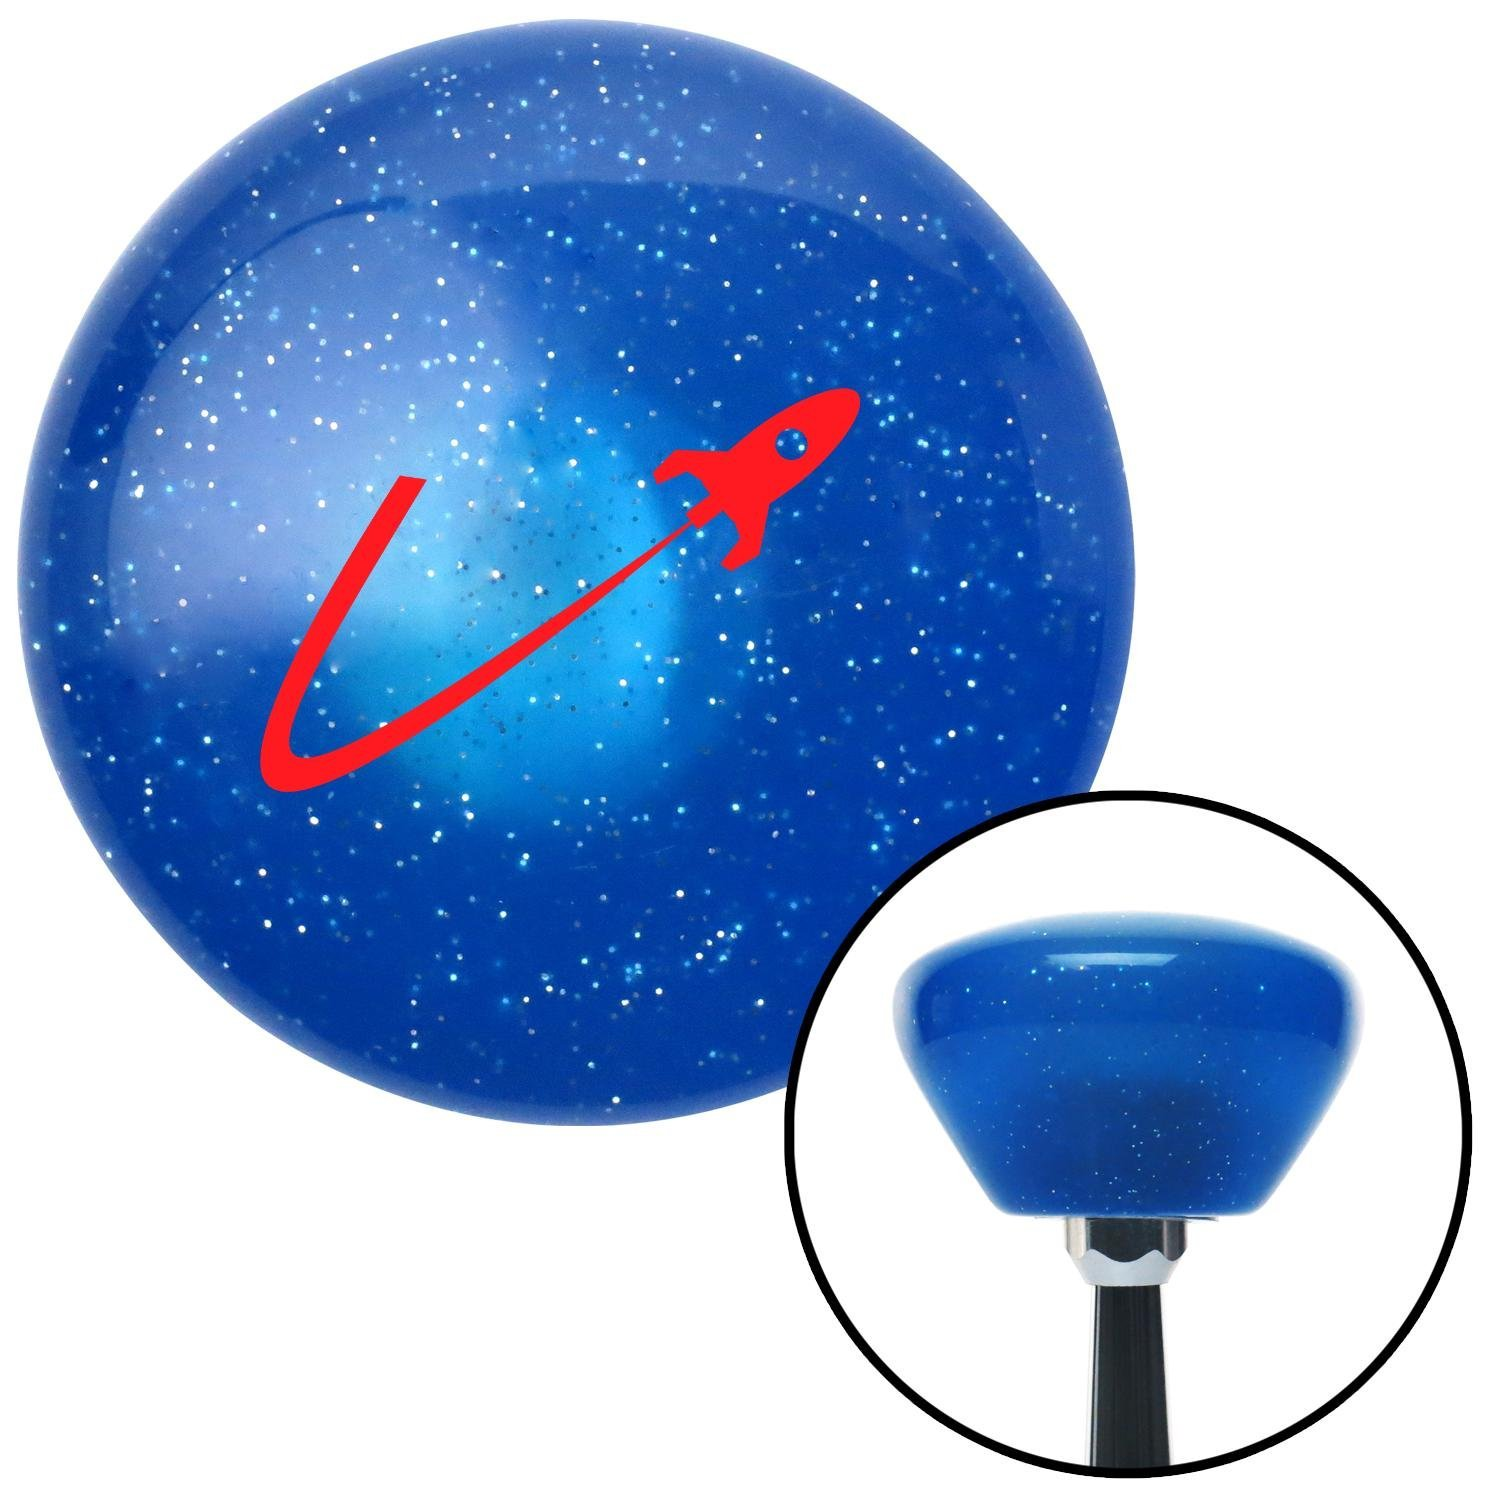 Red Space Ship in Flight American Shifter 189138 Blue Retro Metal Flake Shift Knob with M16 x 1.5 Insert